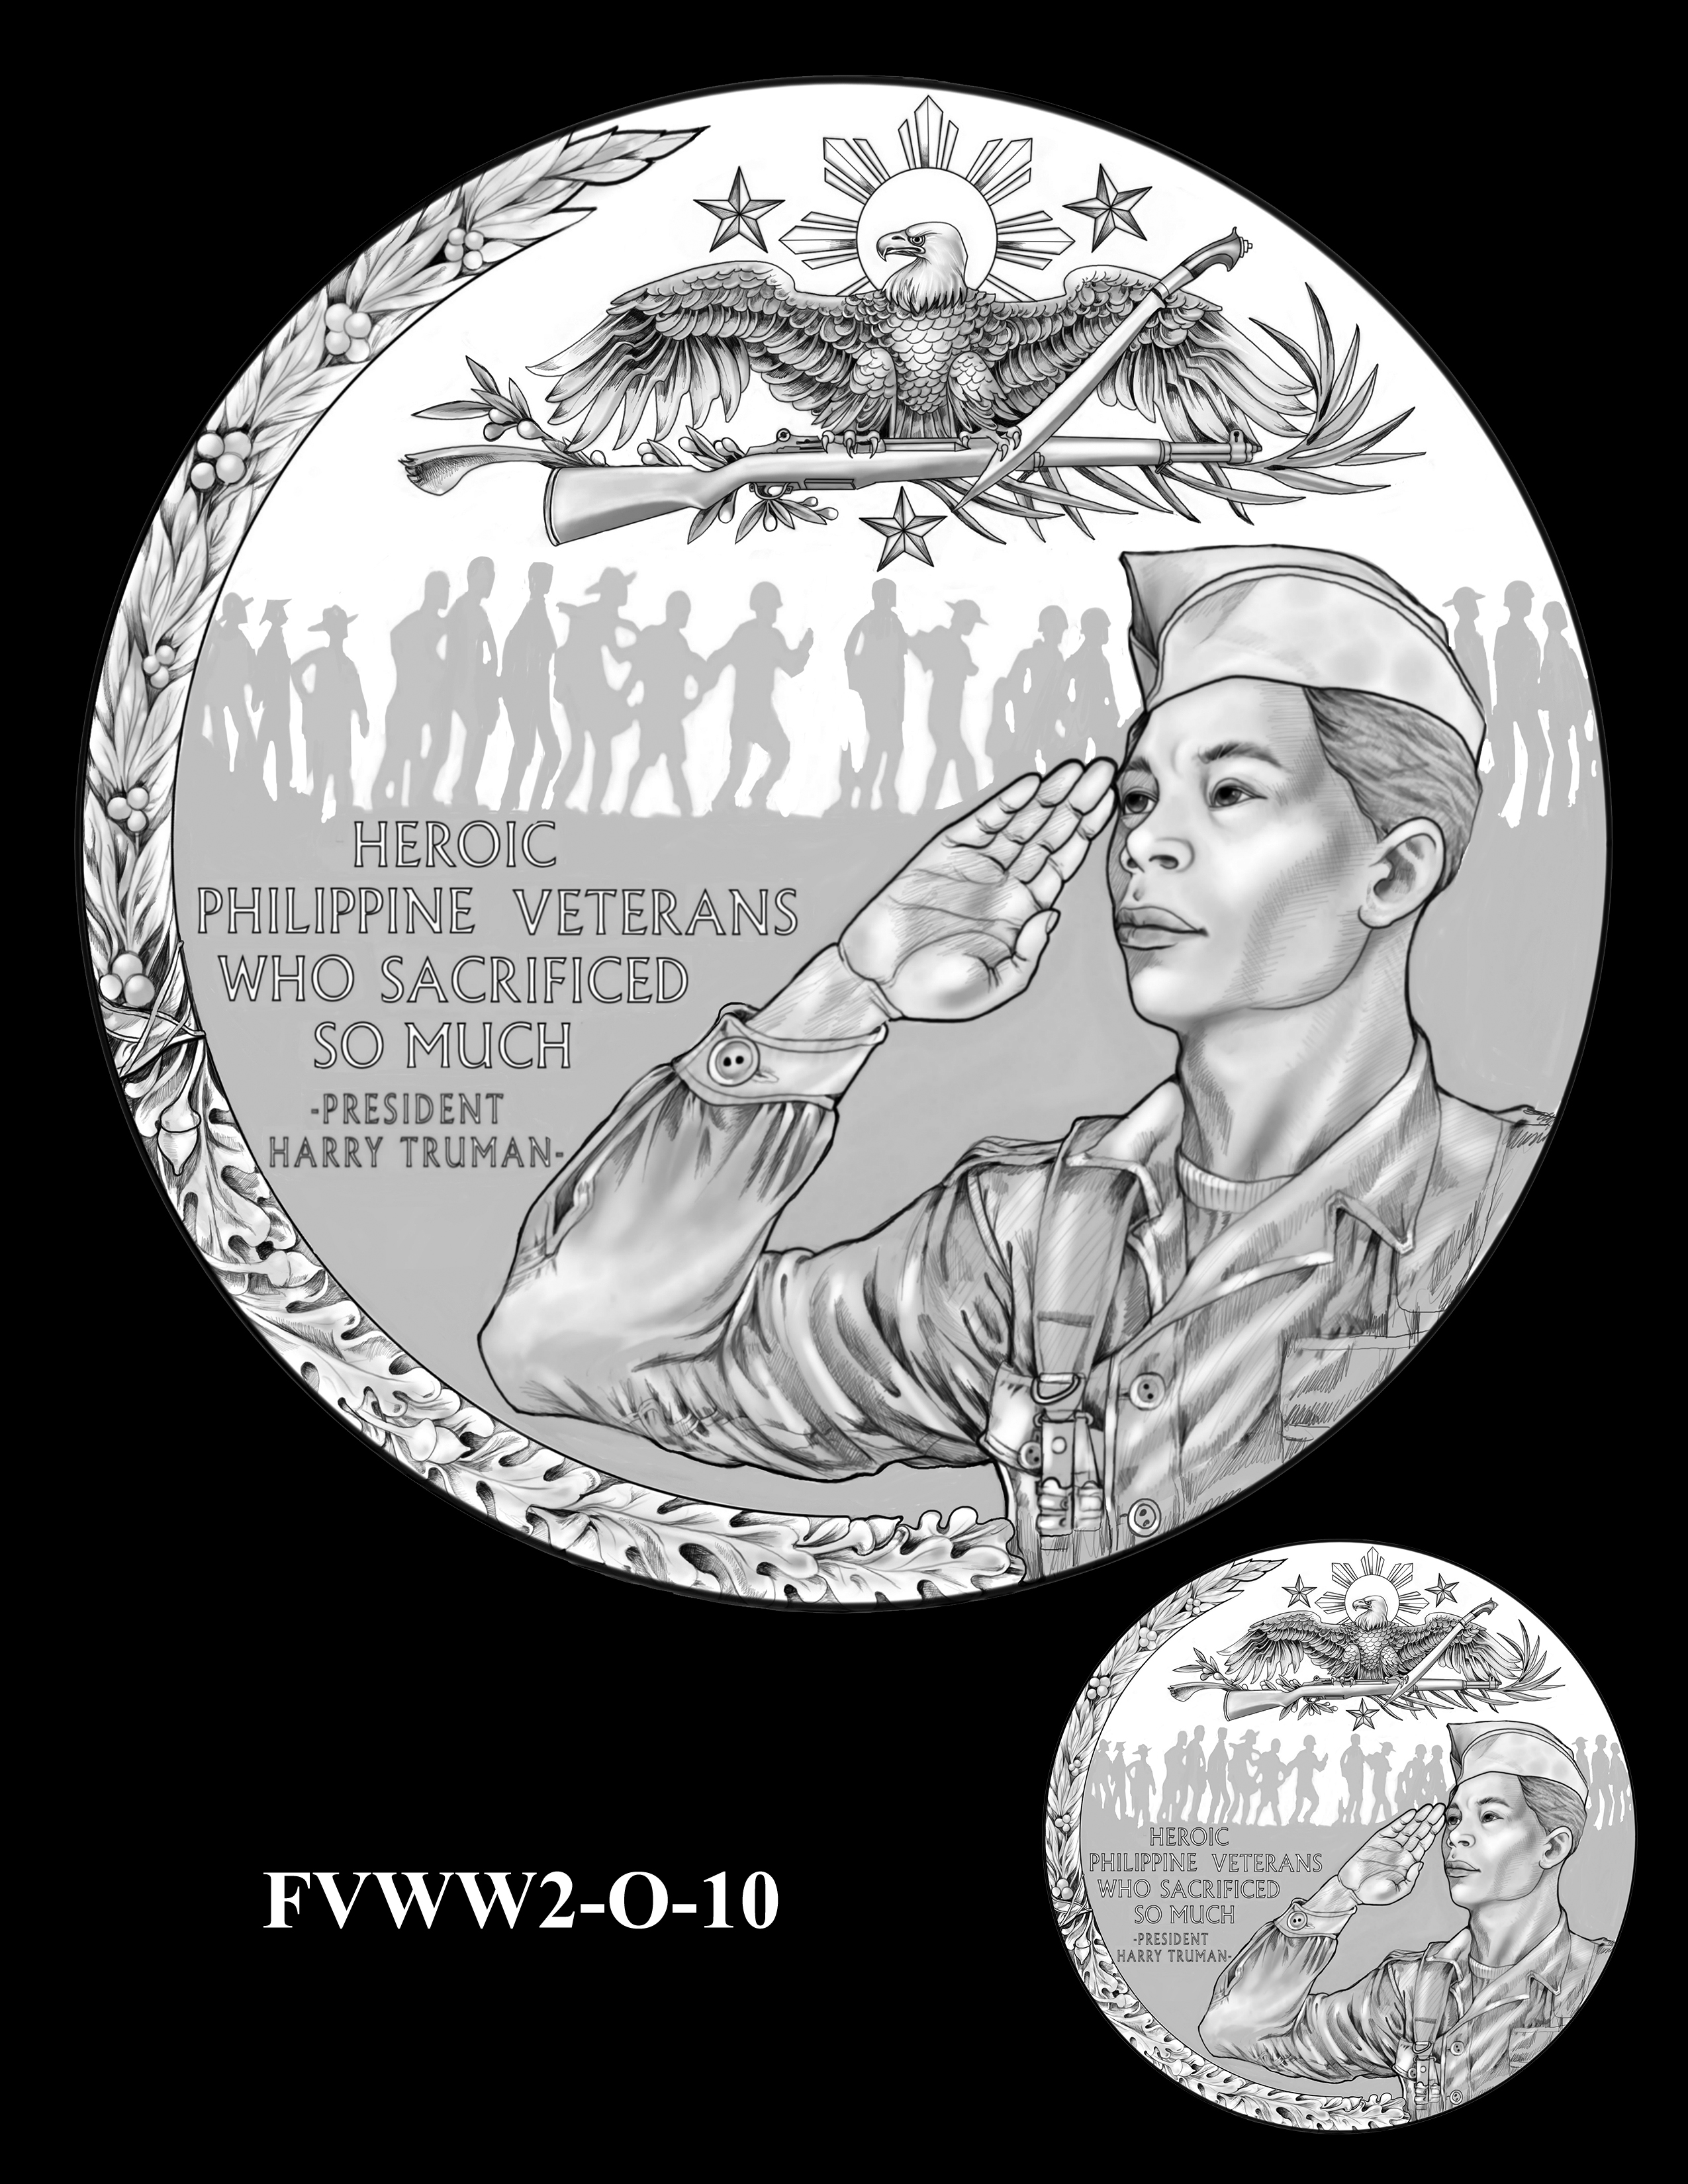 FVWW2-O-10 -- Filipino Veterans of World War II Congressional Gold Medal